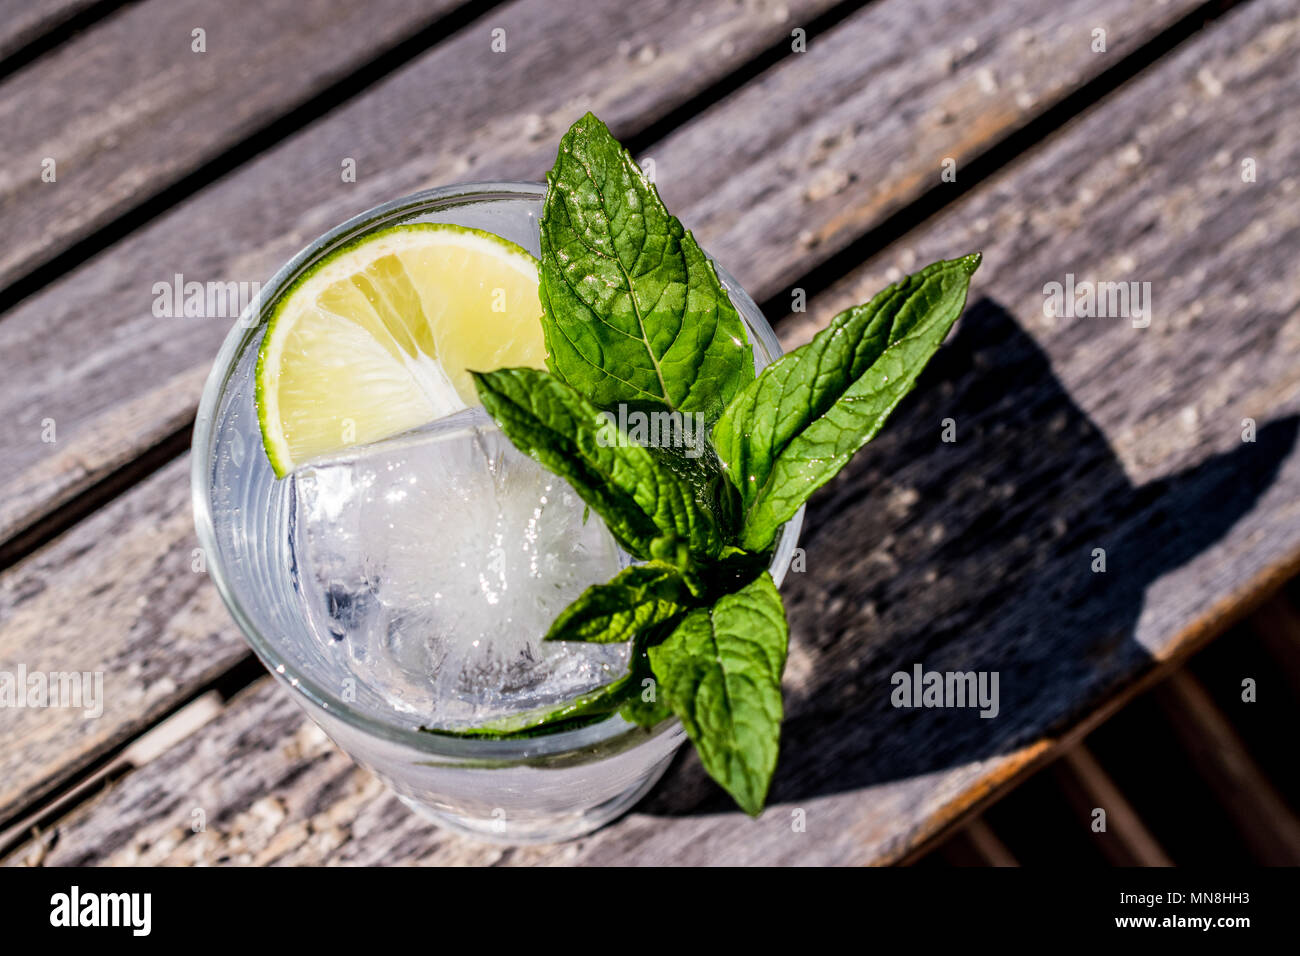 Vodka or Gin Tonic Cocktail with lime, mint leaves and ice at the garden (natural light). Beverage Concept. - Stock Image